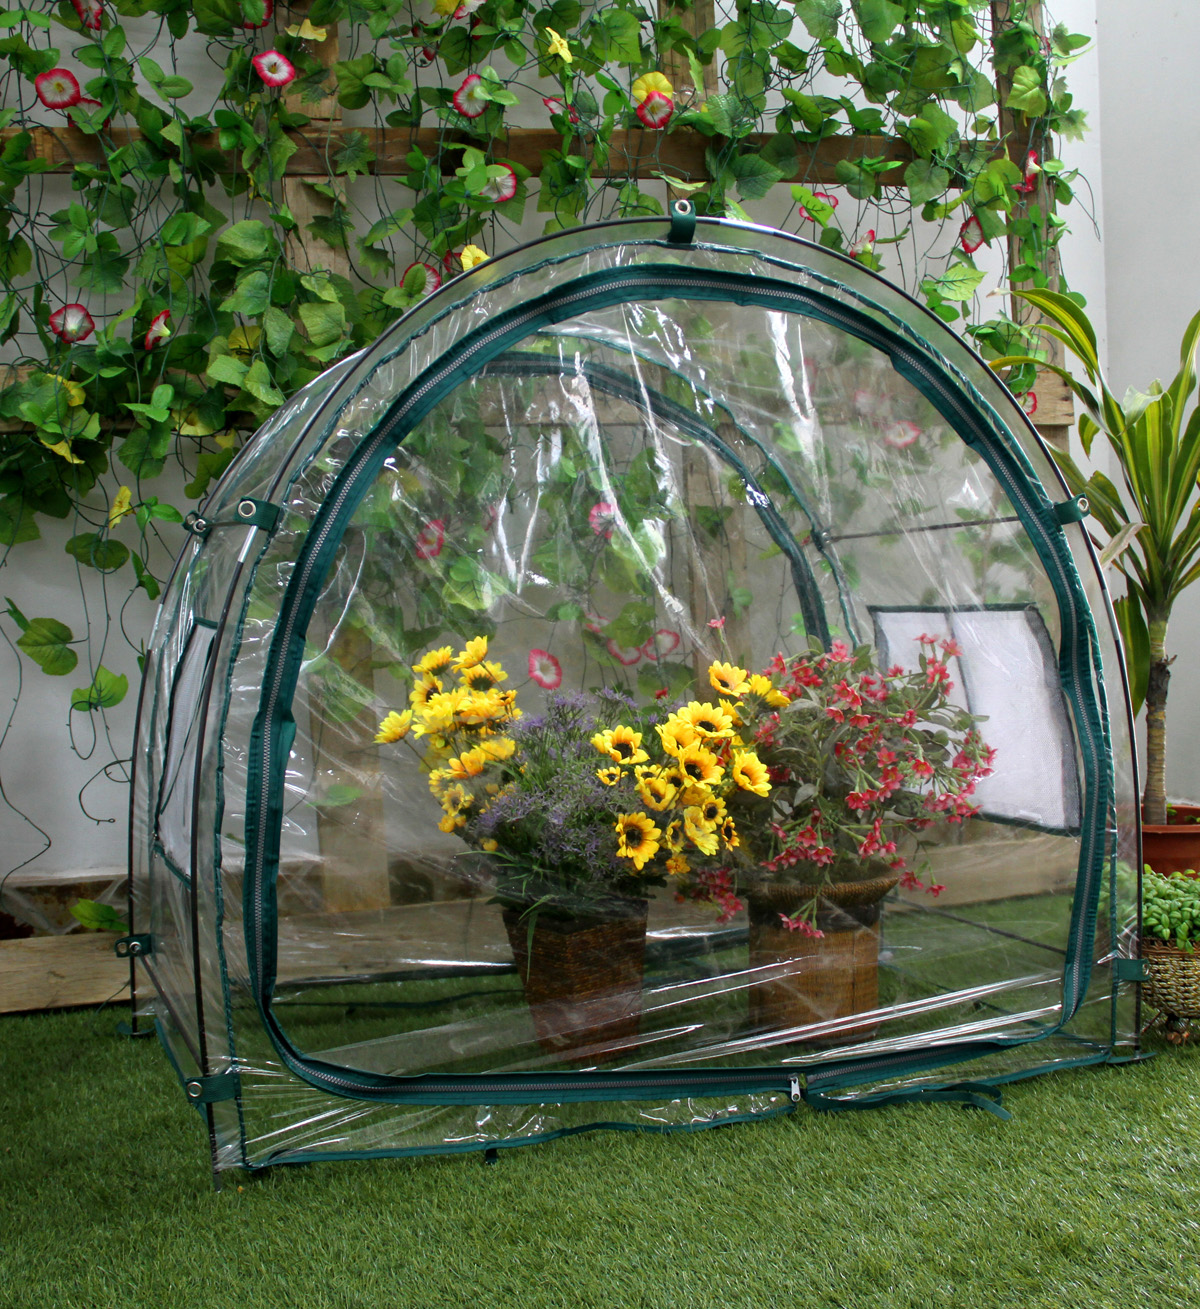 Zenport Mini Greenhouse SH3050LG-PVC-A for Protected Patio, Balcony Plant Growing and Gardening , 3.3 x 2 x 3.3-Feet